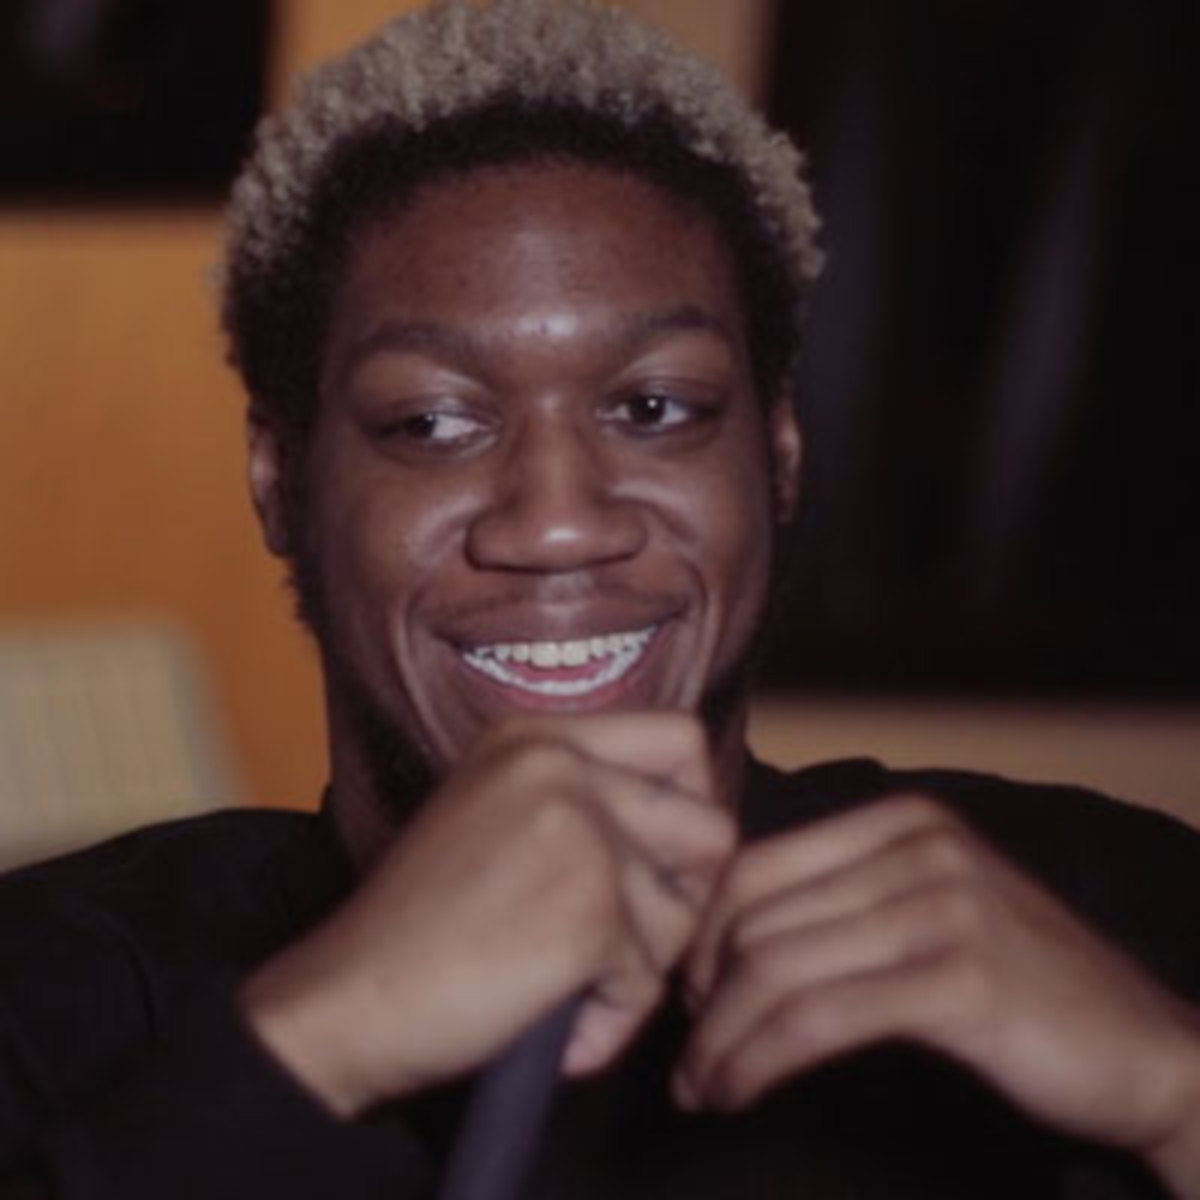 og-maco-interview.jpg